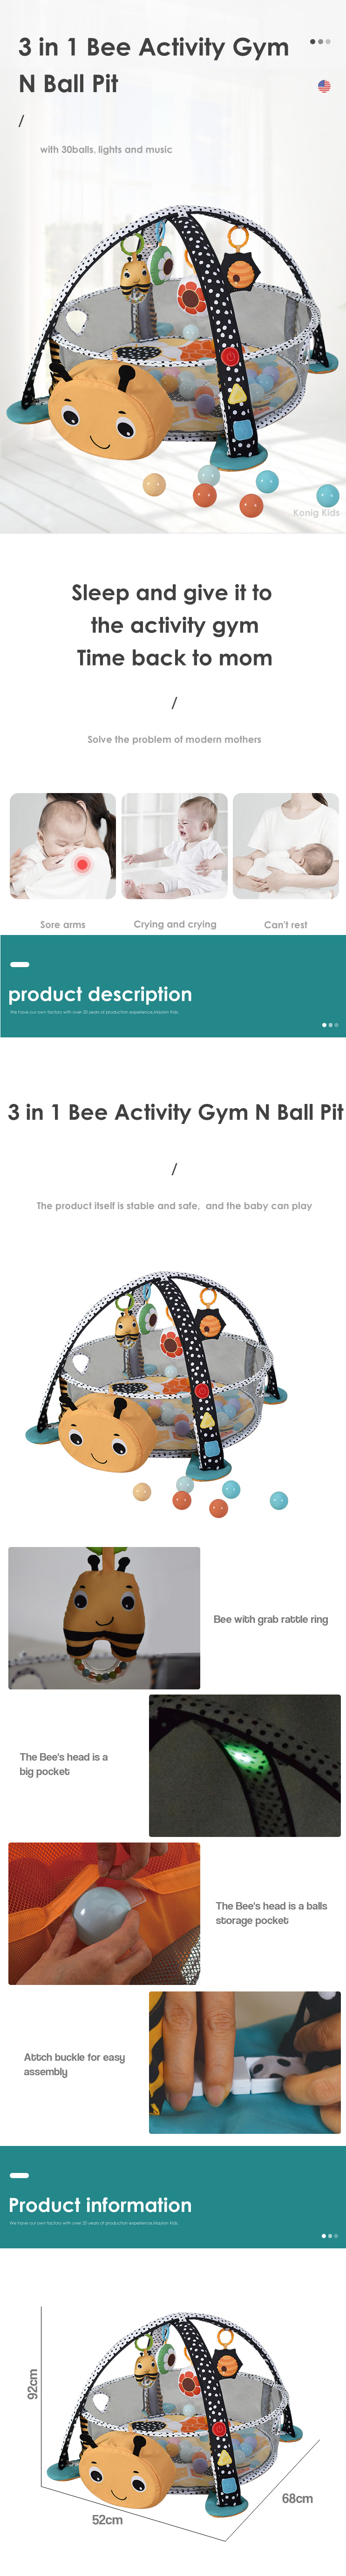 Wholesale Baby Toy Gym 3 in 1 Bee activity gym with lights and music